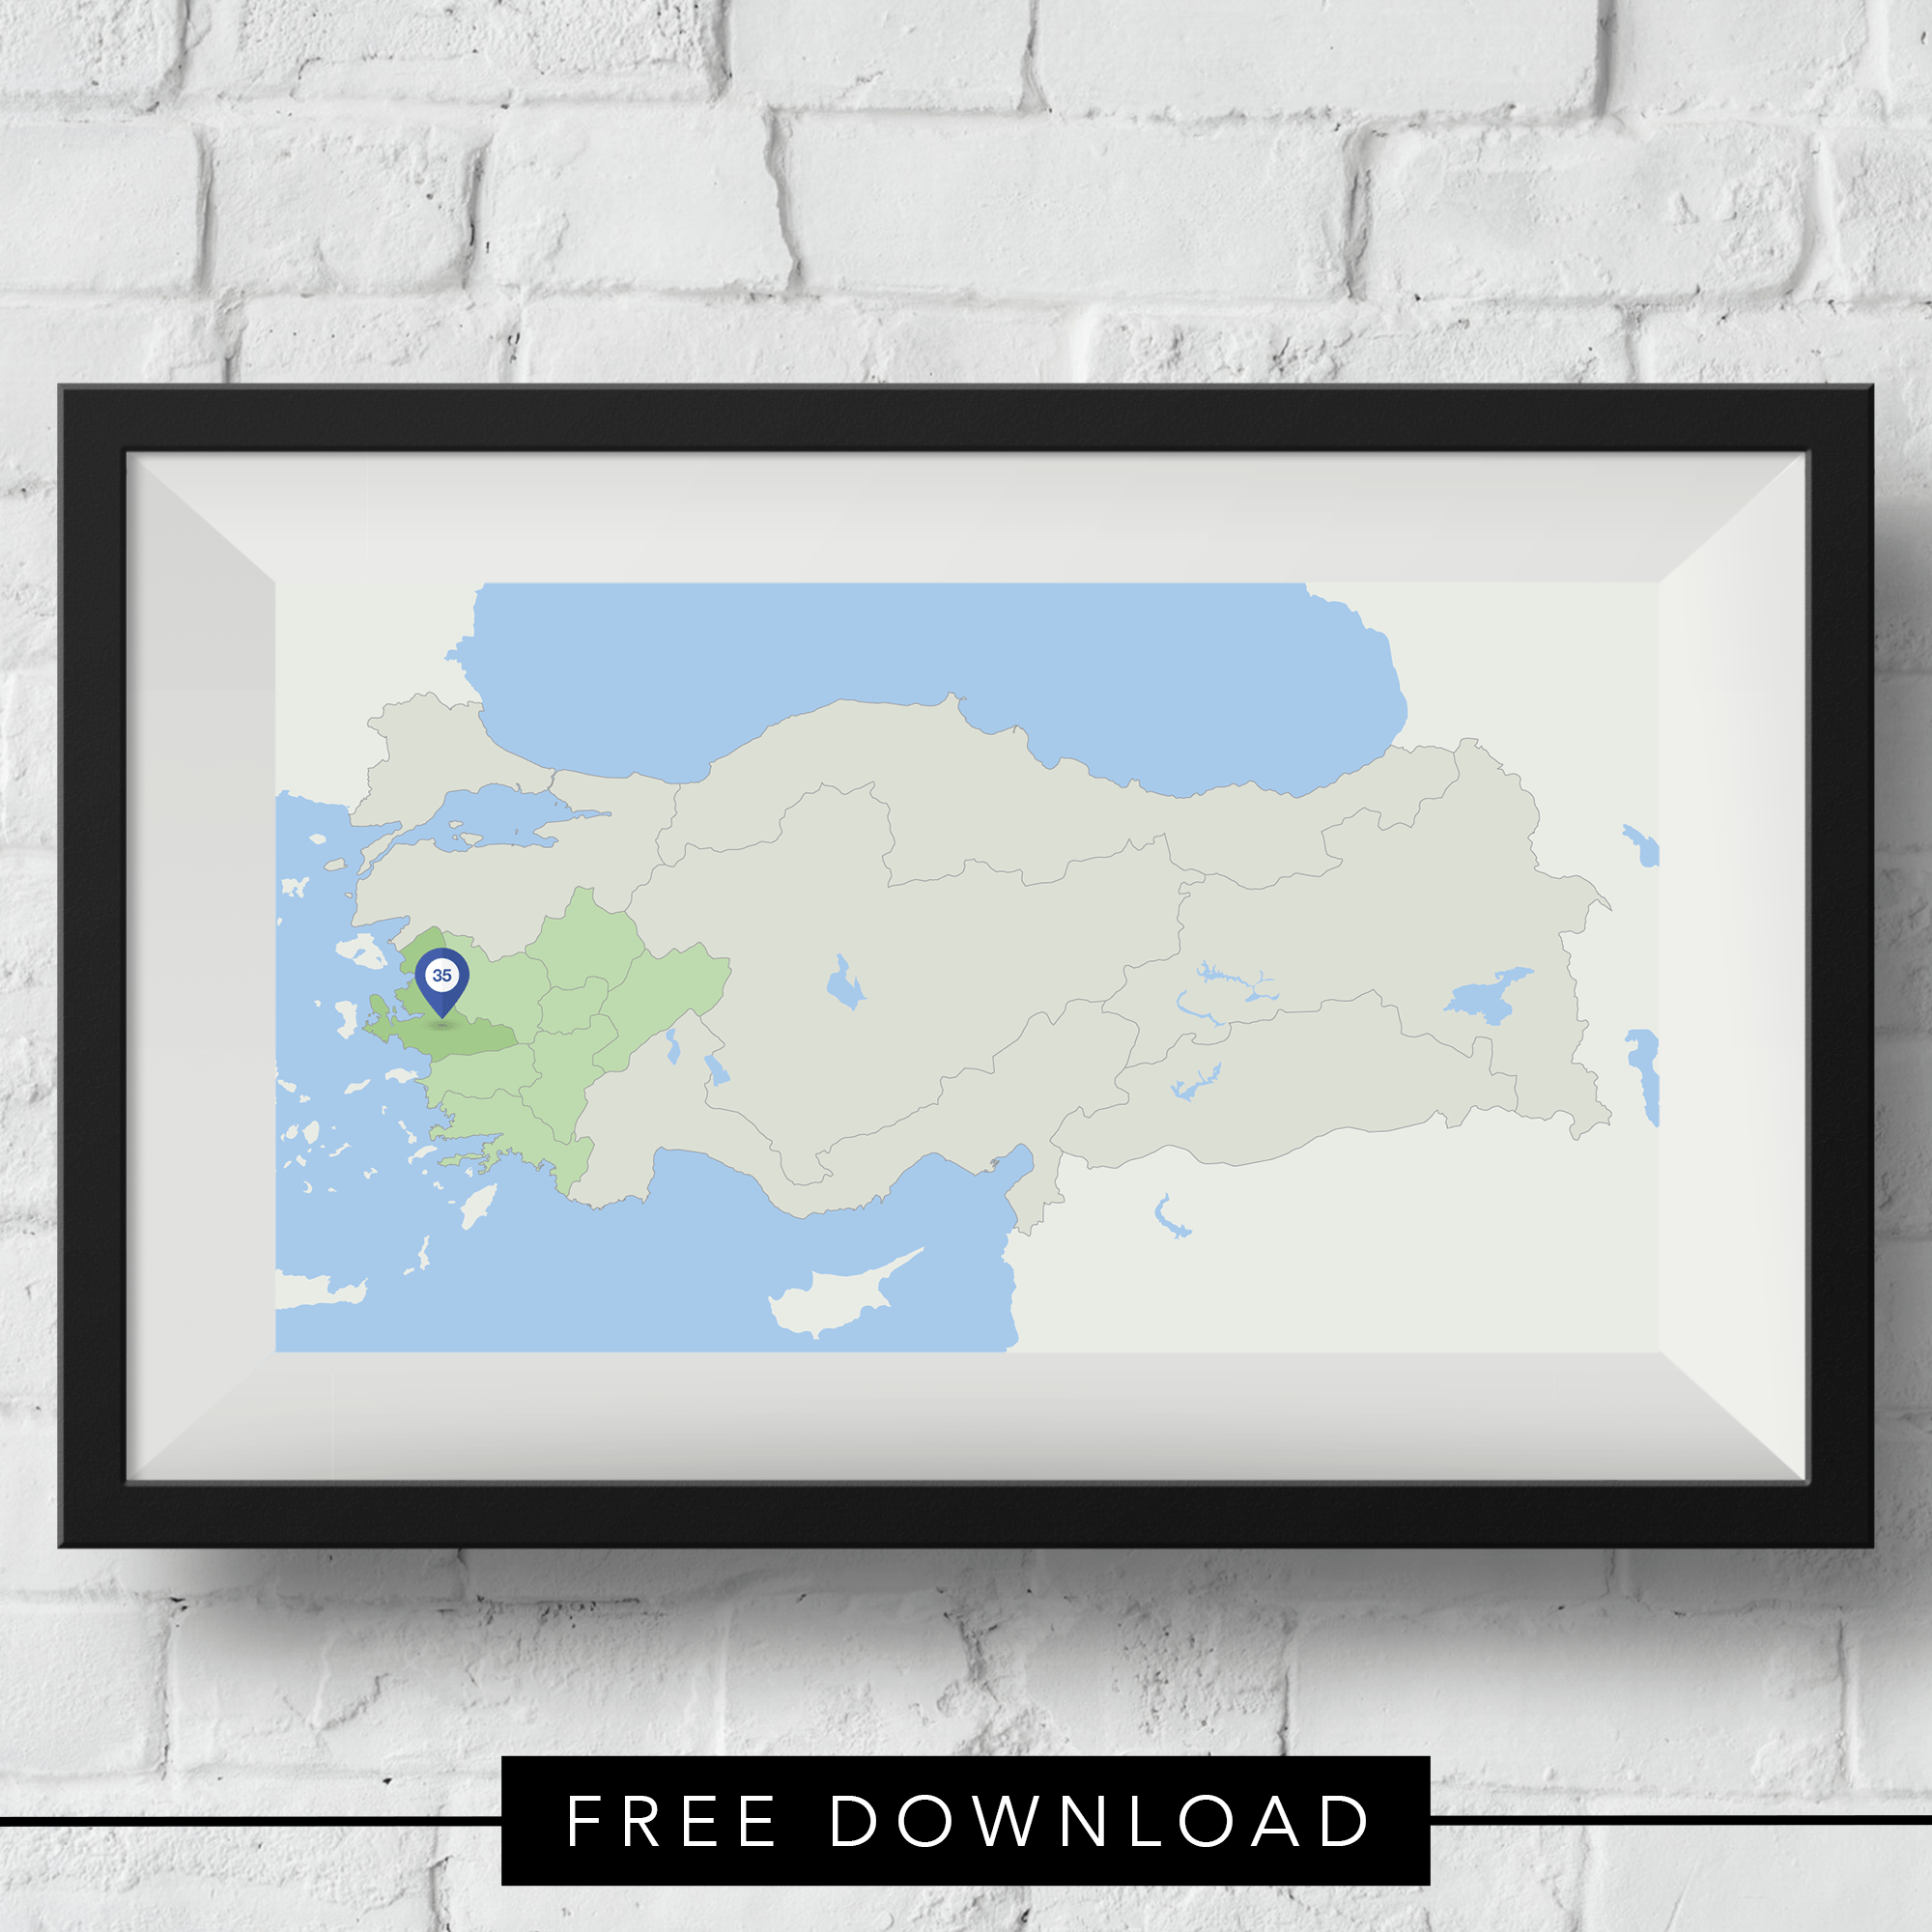 jason-b-graham-map-of-turkey-aegean-region-izmir-1920-1080-featured-image